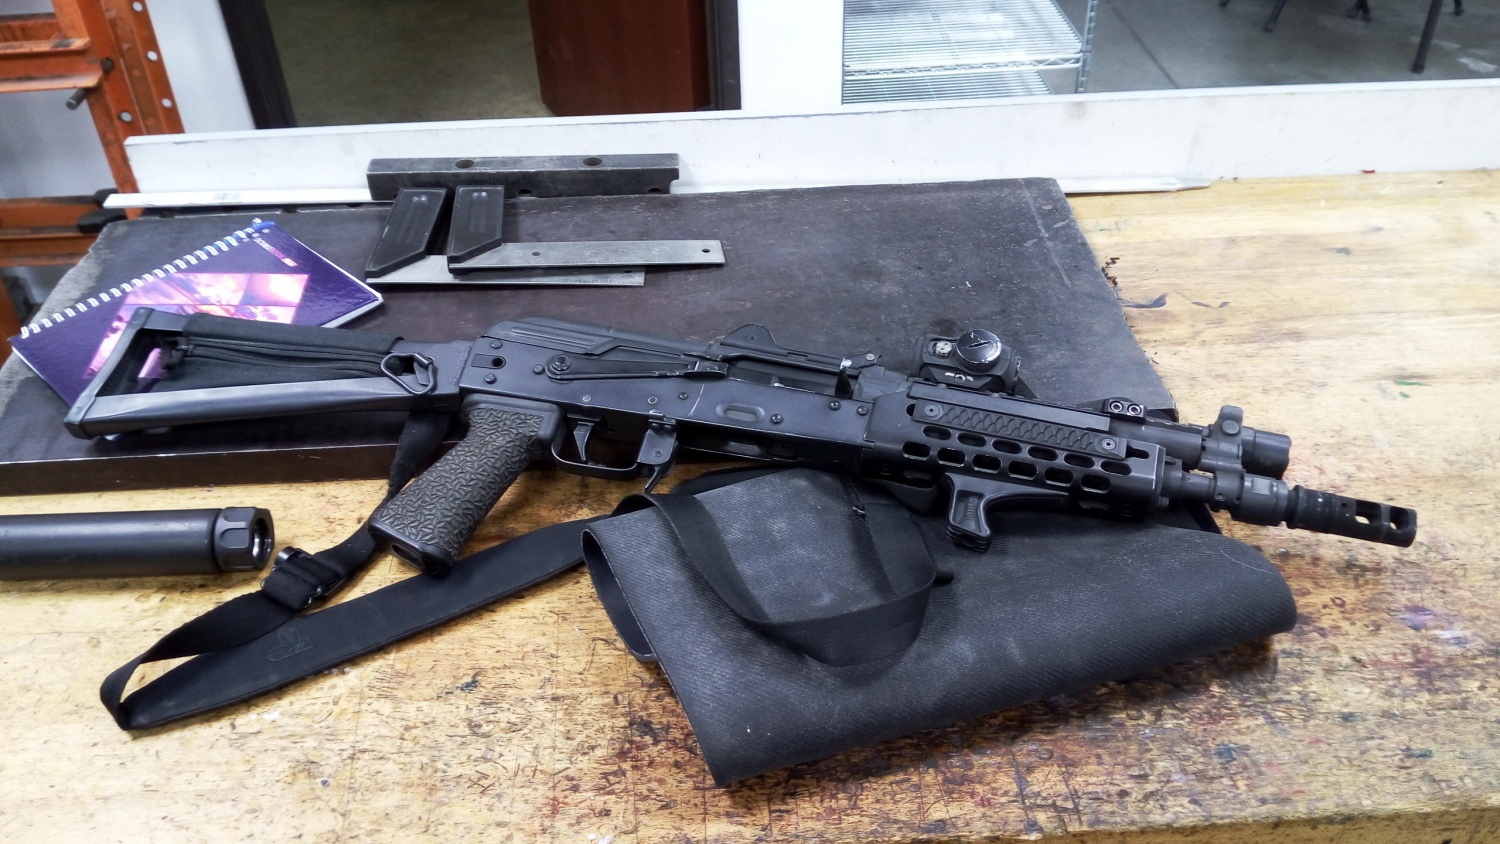 Red Dot Sights on AKs - Critical View (Part 2) -The Firearm Blog